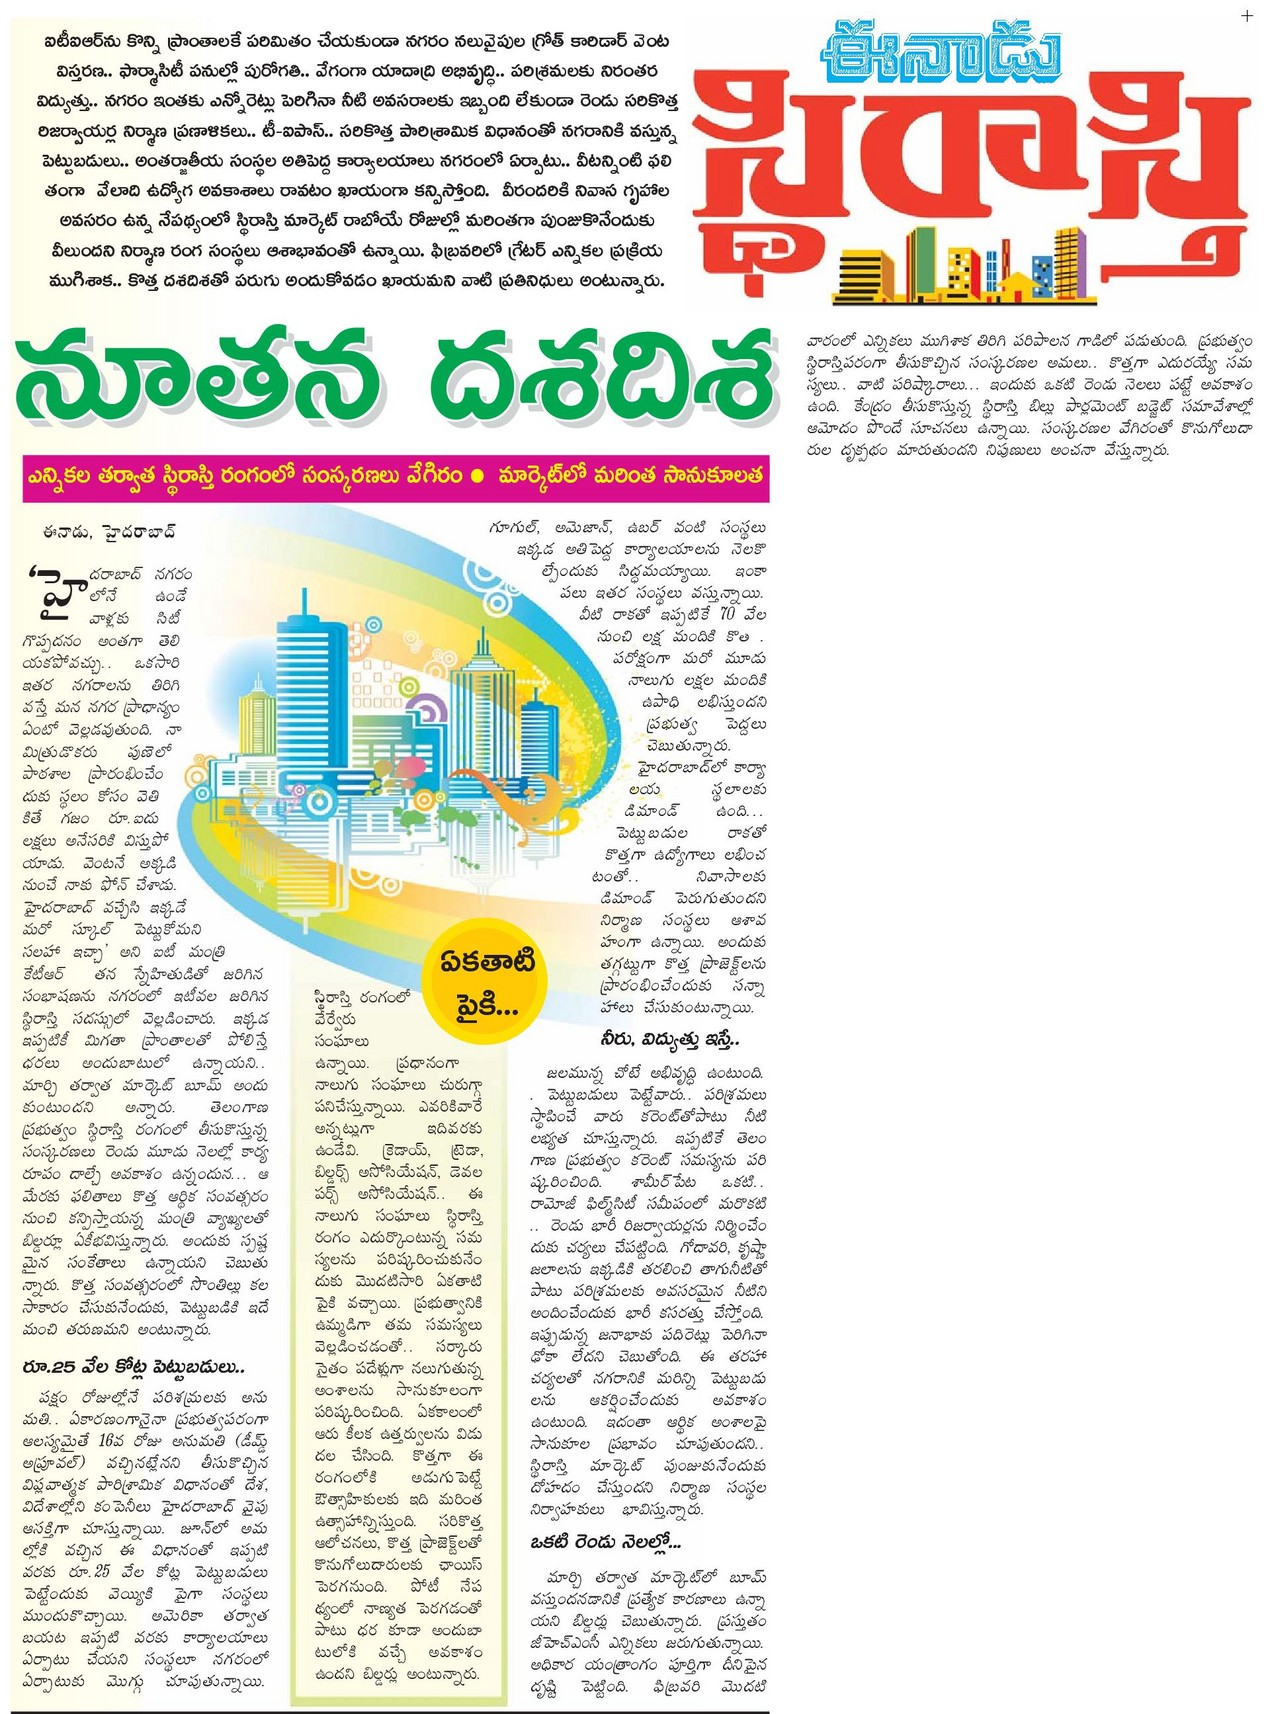 Real estate Trend in Hyderabad-2016